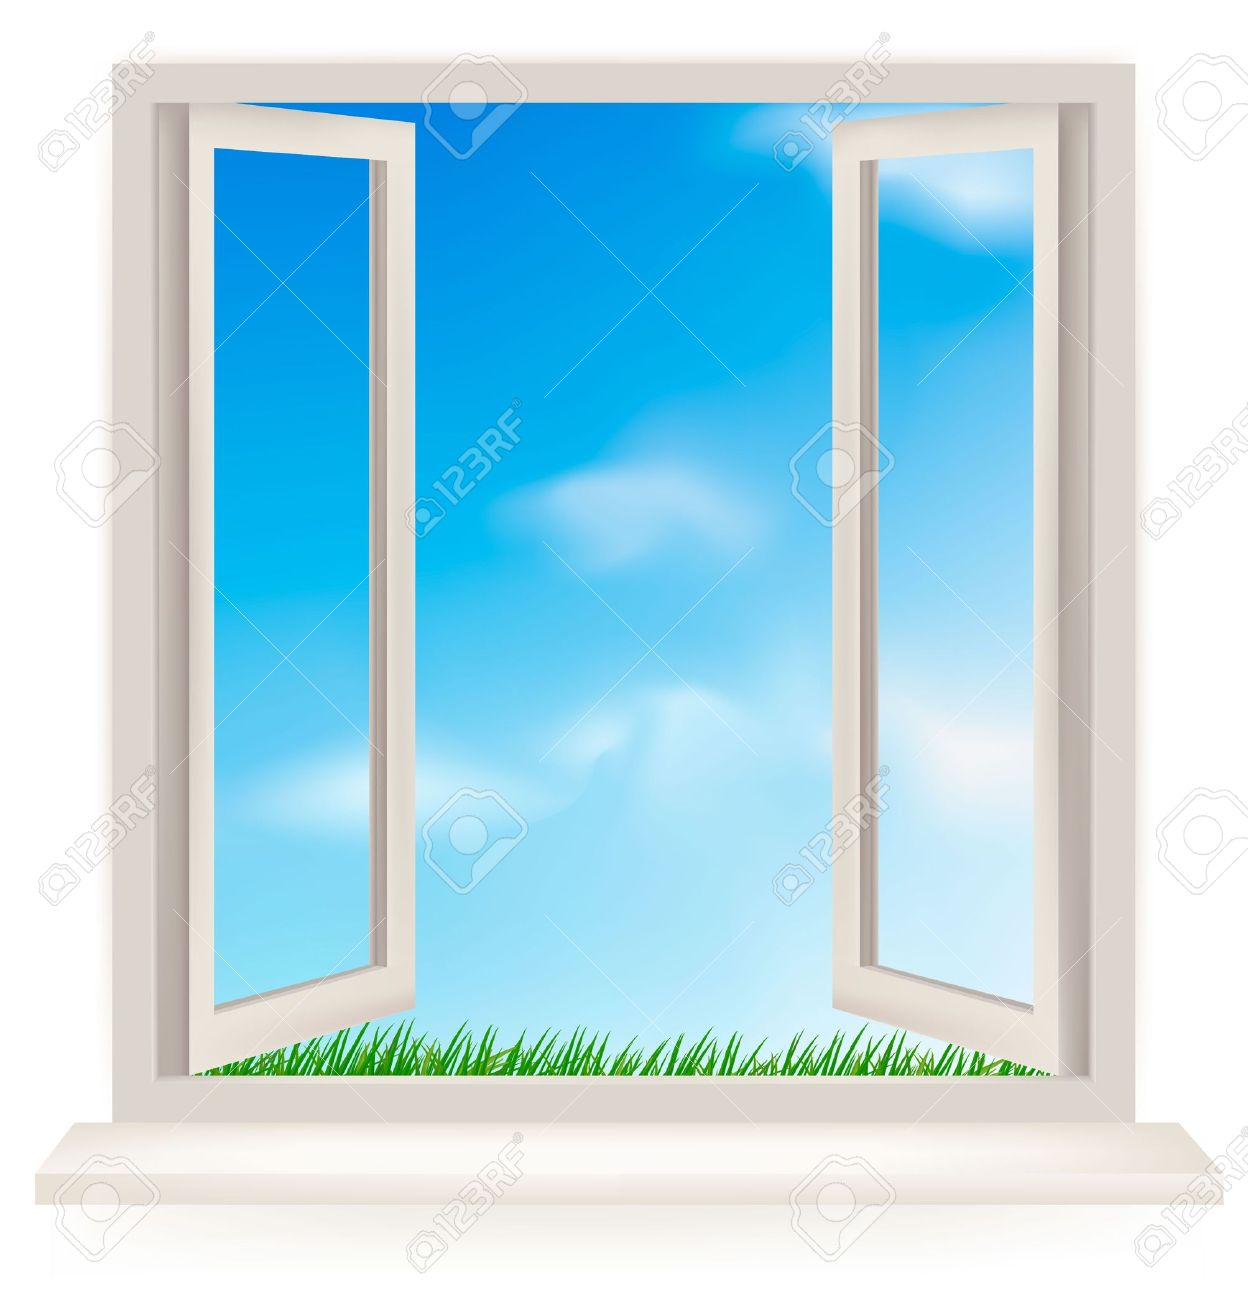 Free window clipart.